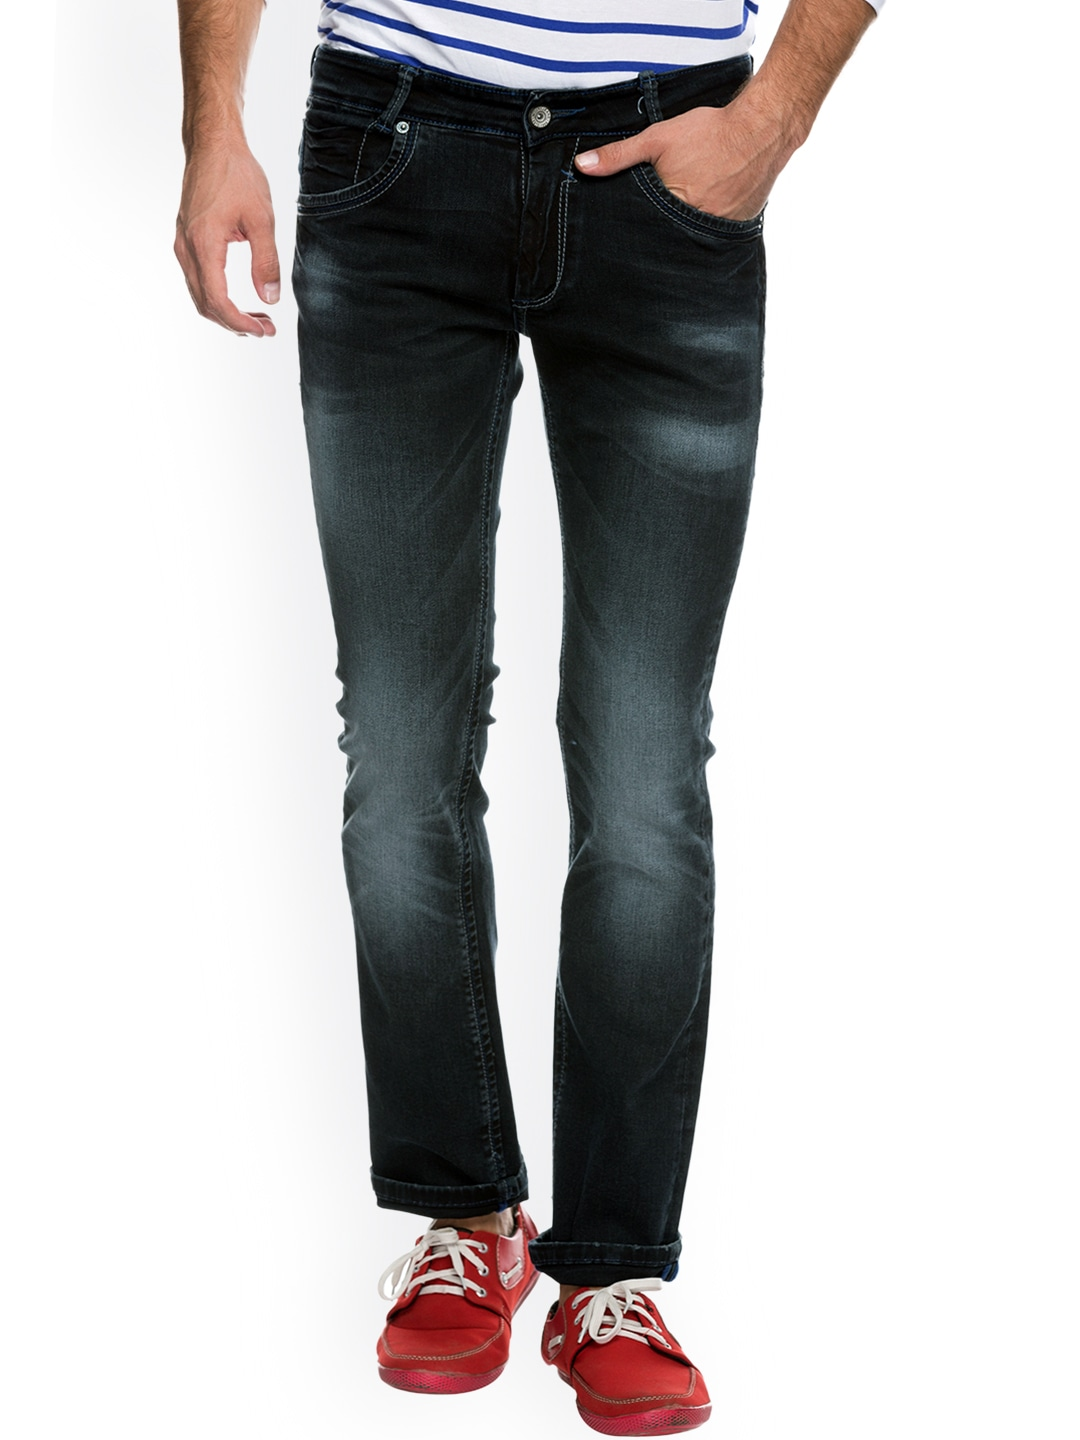 Men Bootcut Jeans - Buy Men Bootcut Jeans online in India